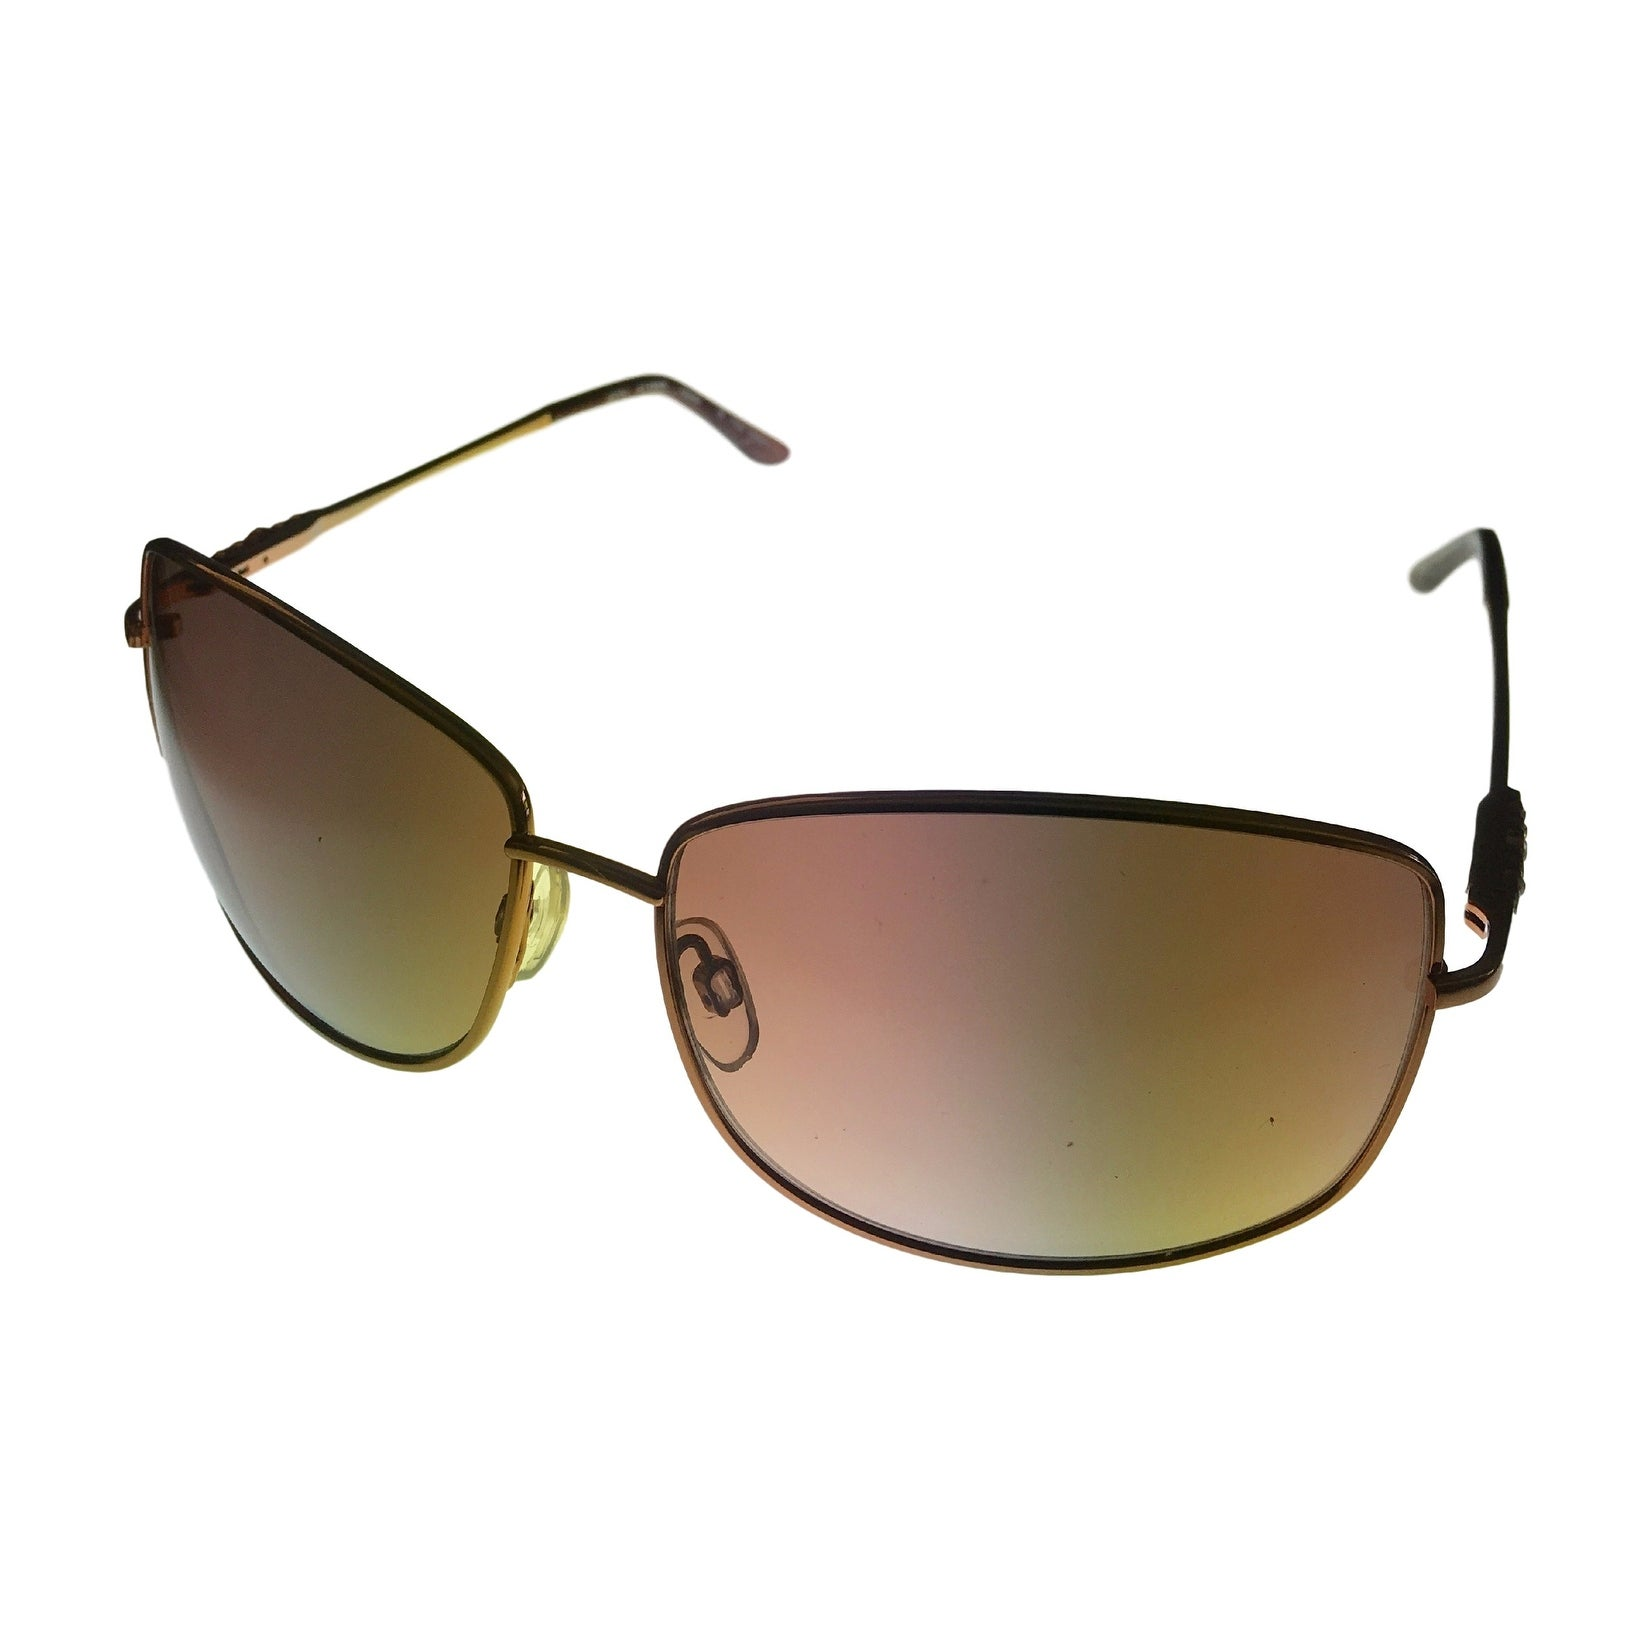 Esprit Sunglass 19309 535 Womens Brown Metal Fashion Avaitor, Gradient Lens - Thumbnail 0